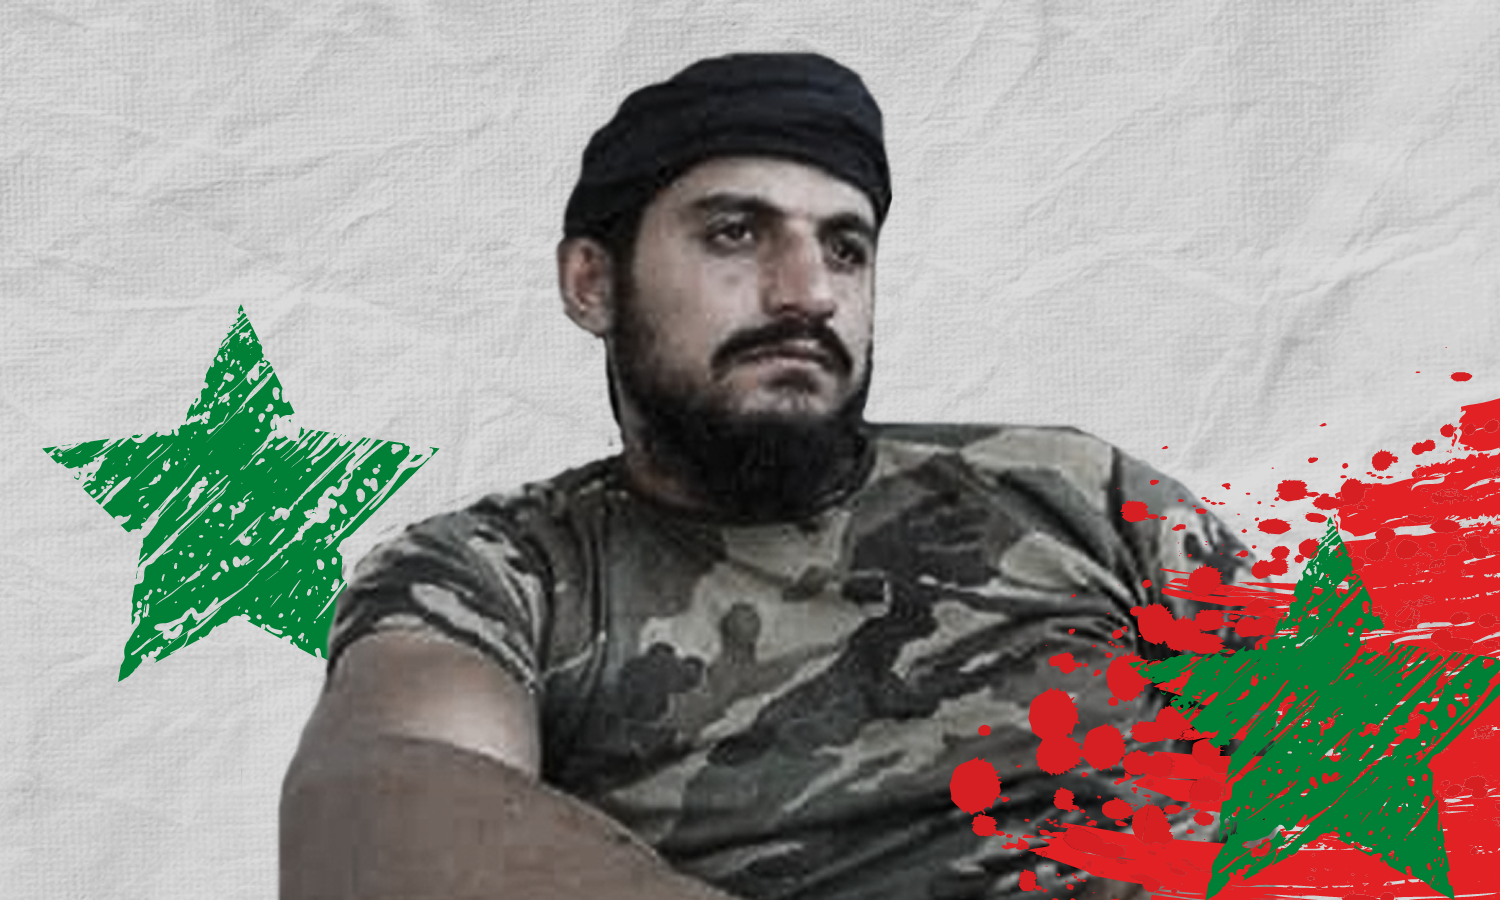 Mustafa al-Masalmeh, a commander within the ranks of the regime's Military Security Branch (Edited by Enab Baladi)